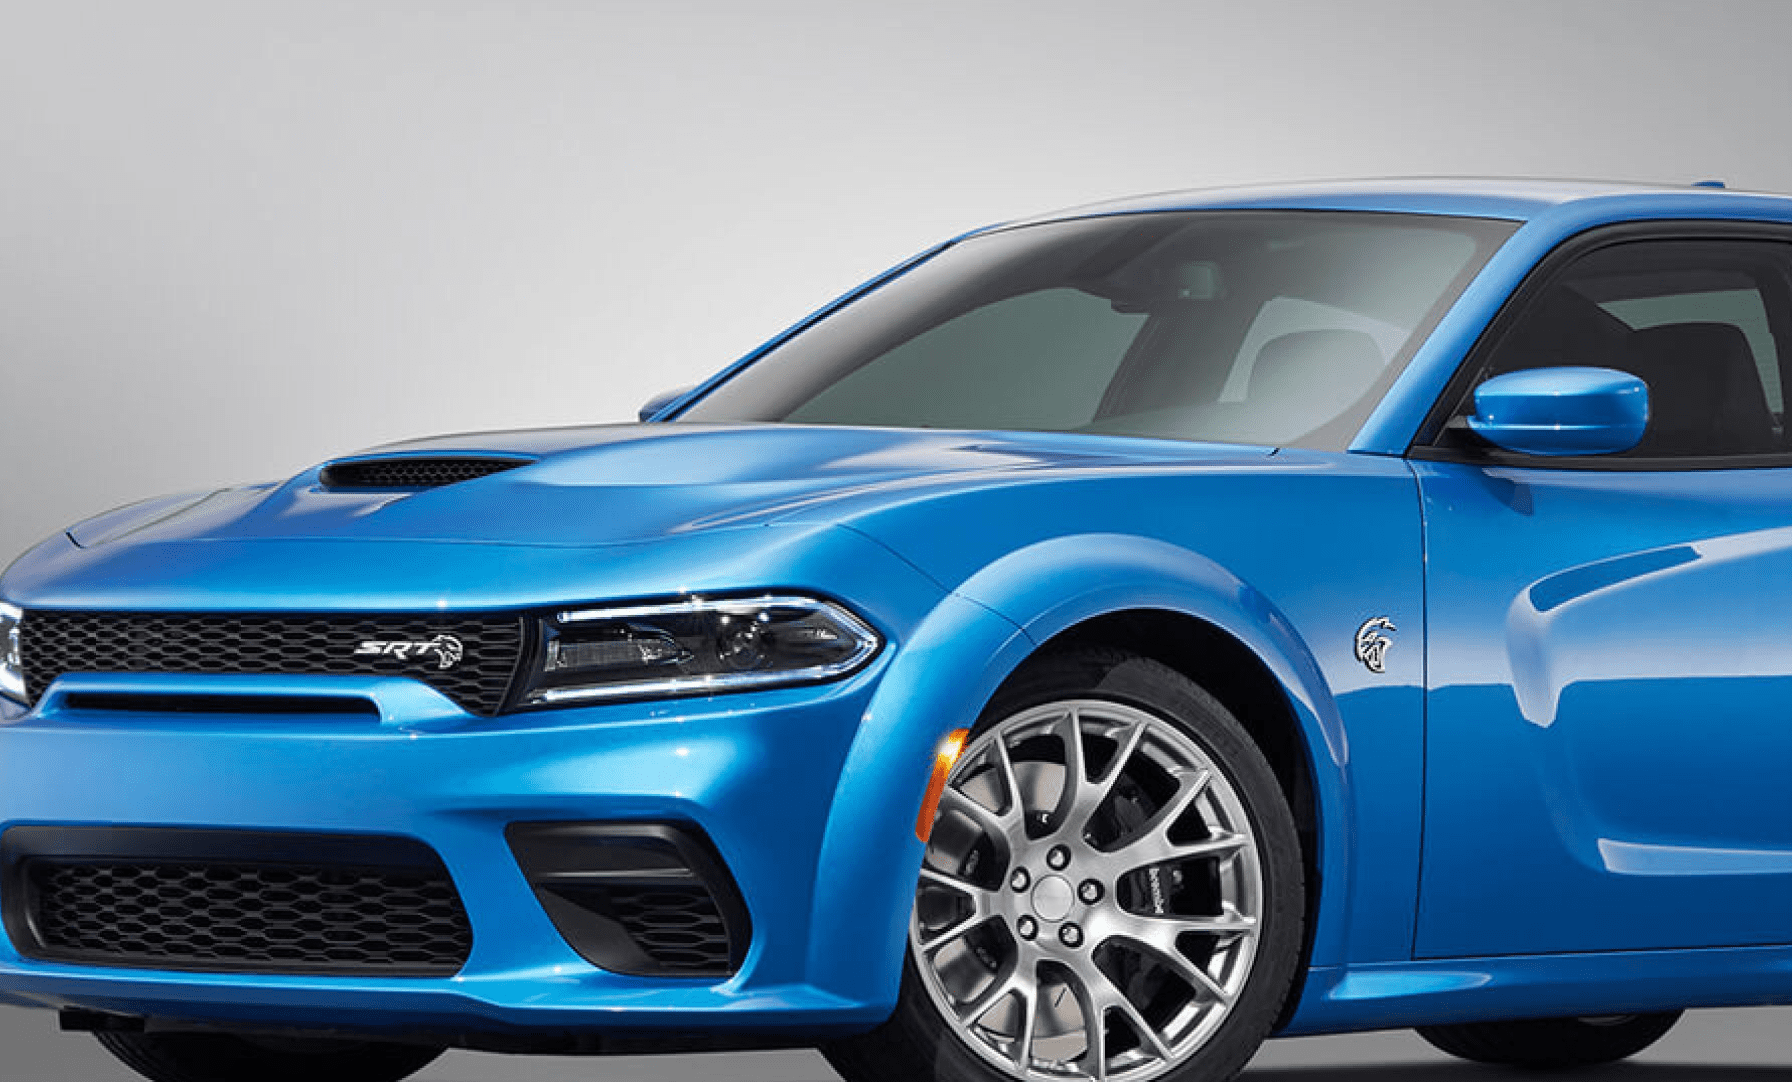 New 2021 Dodge Charger Exhaust, Exterior Colors, Fully ...